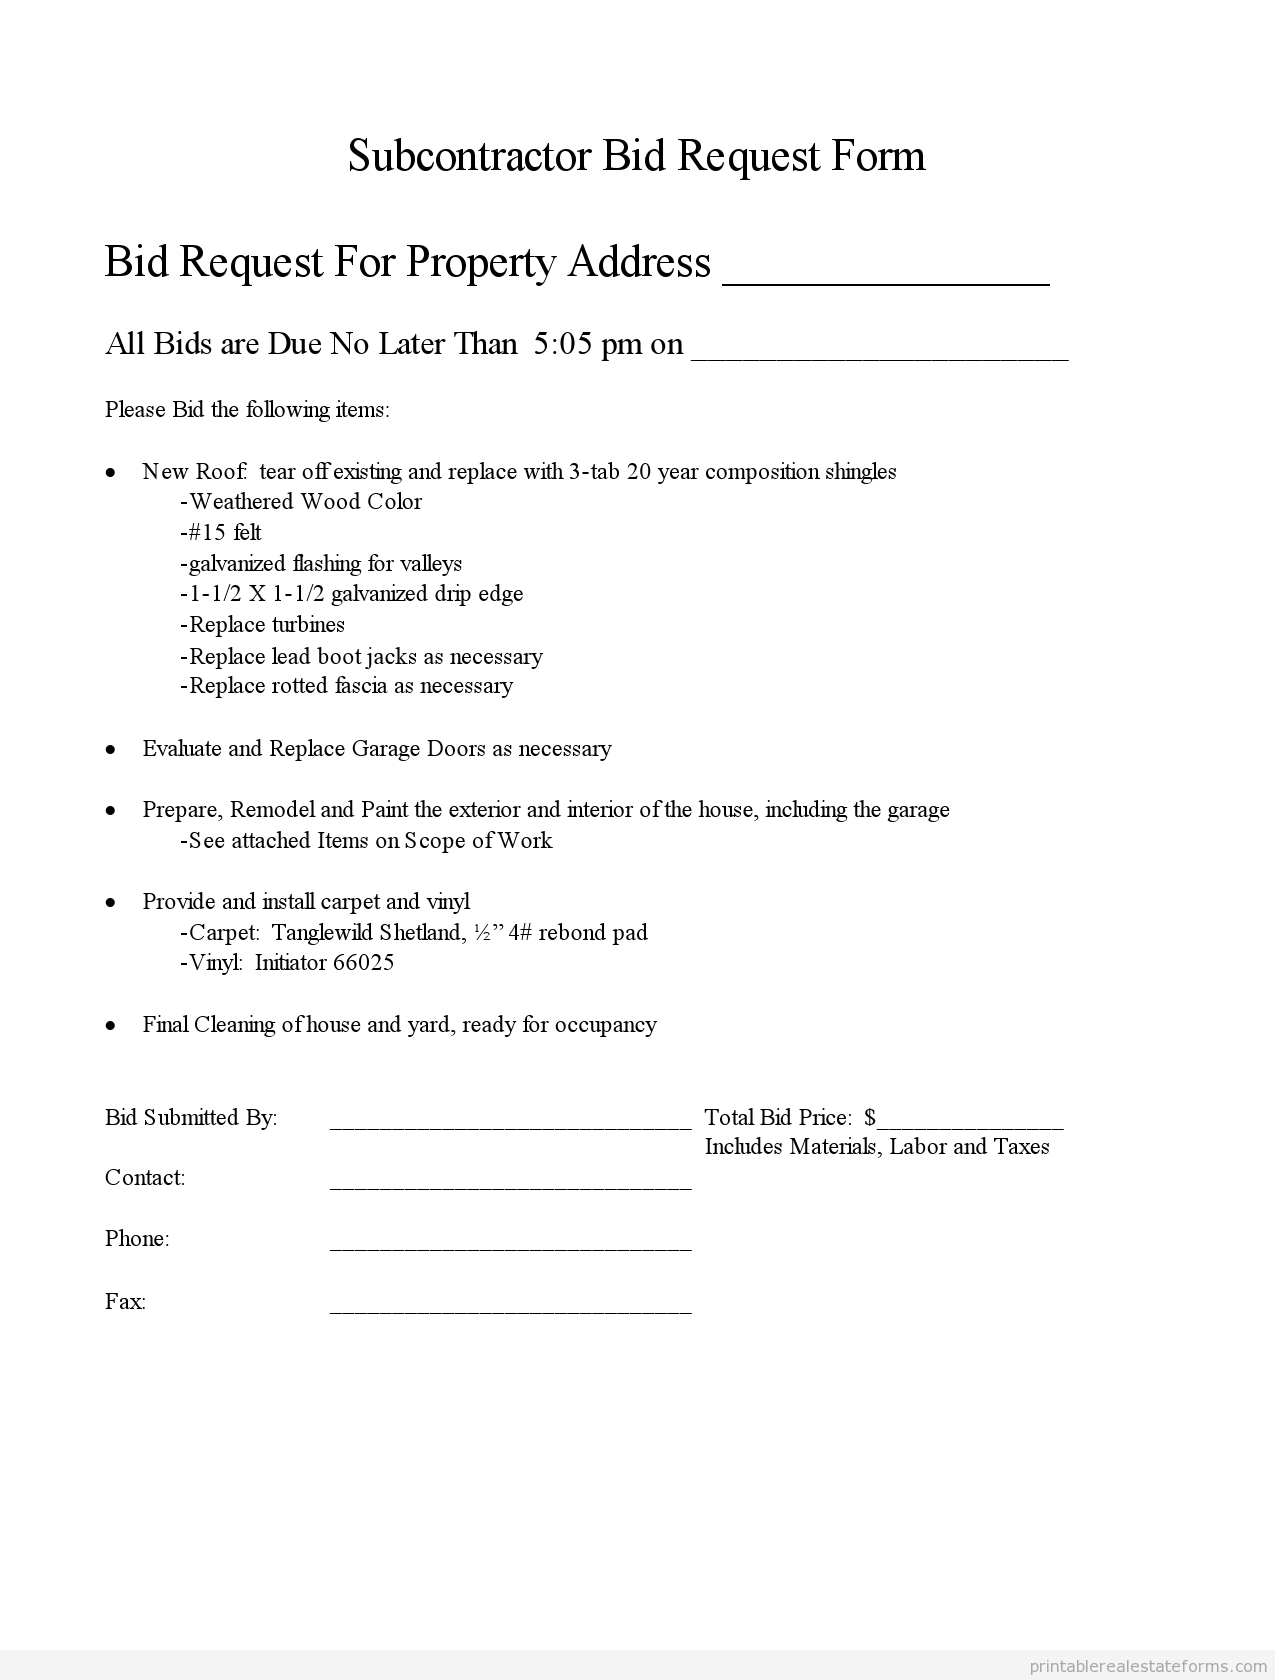 printable subcontractor bid request form and standardized scope of wor template 2015